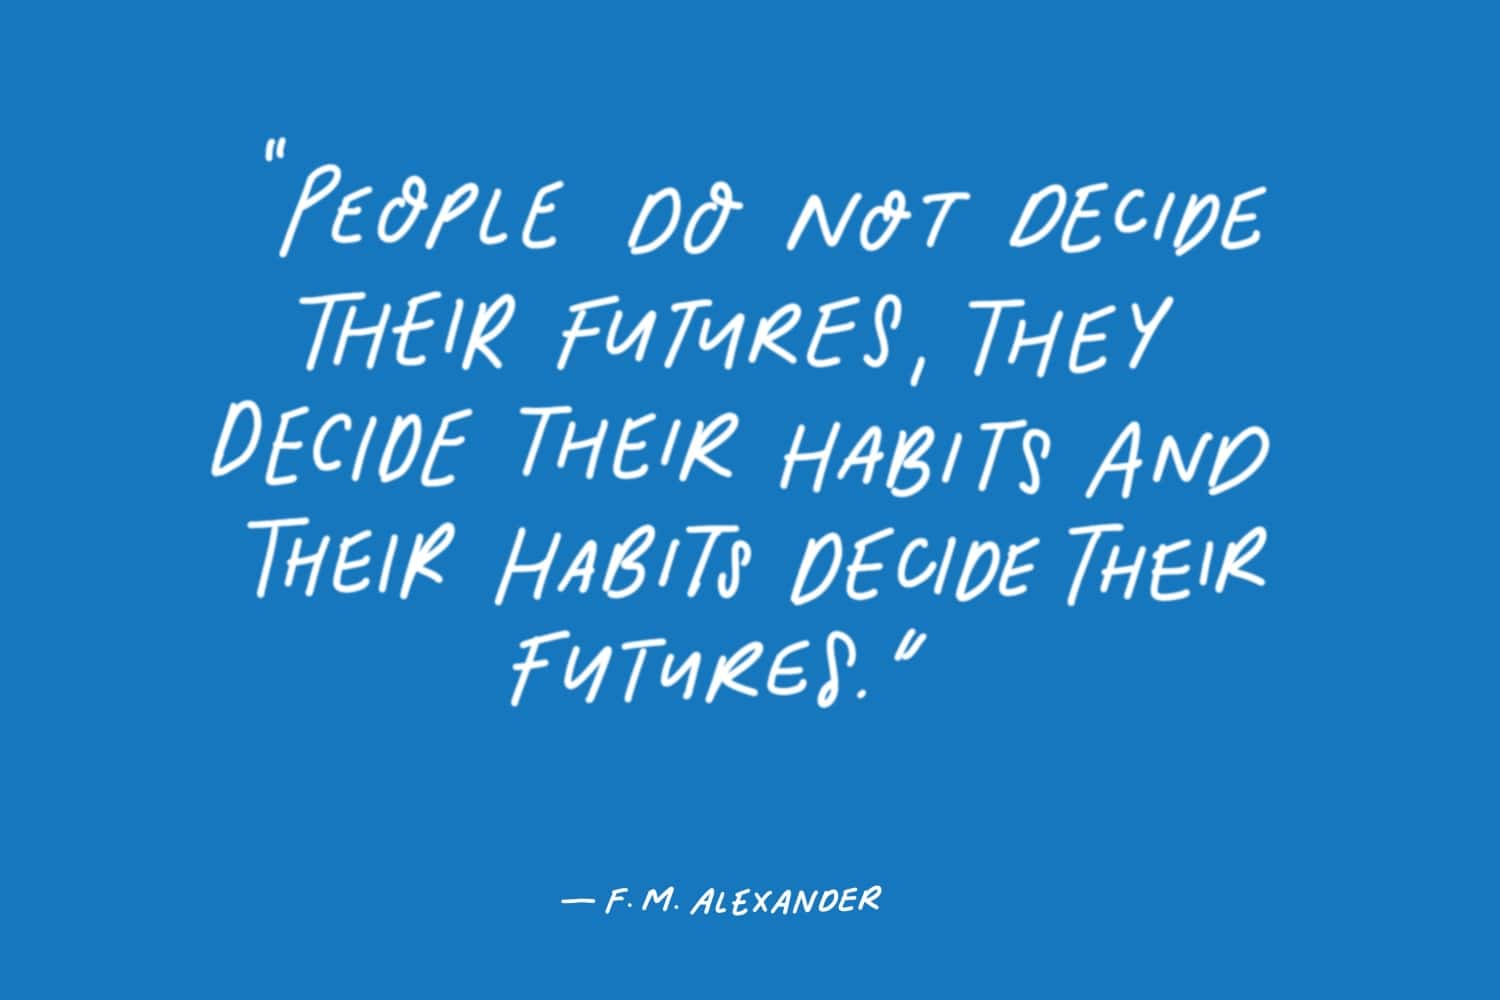 daily-habits-quote-fm-alexander.jpg